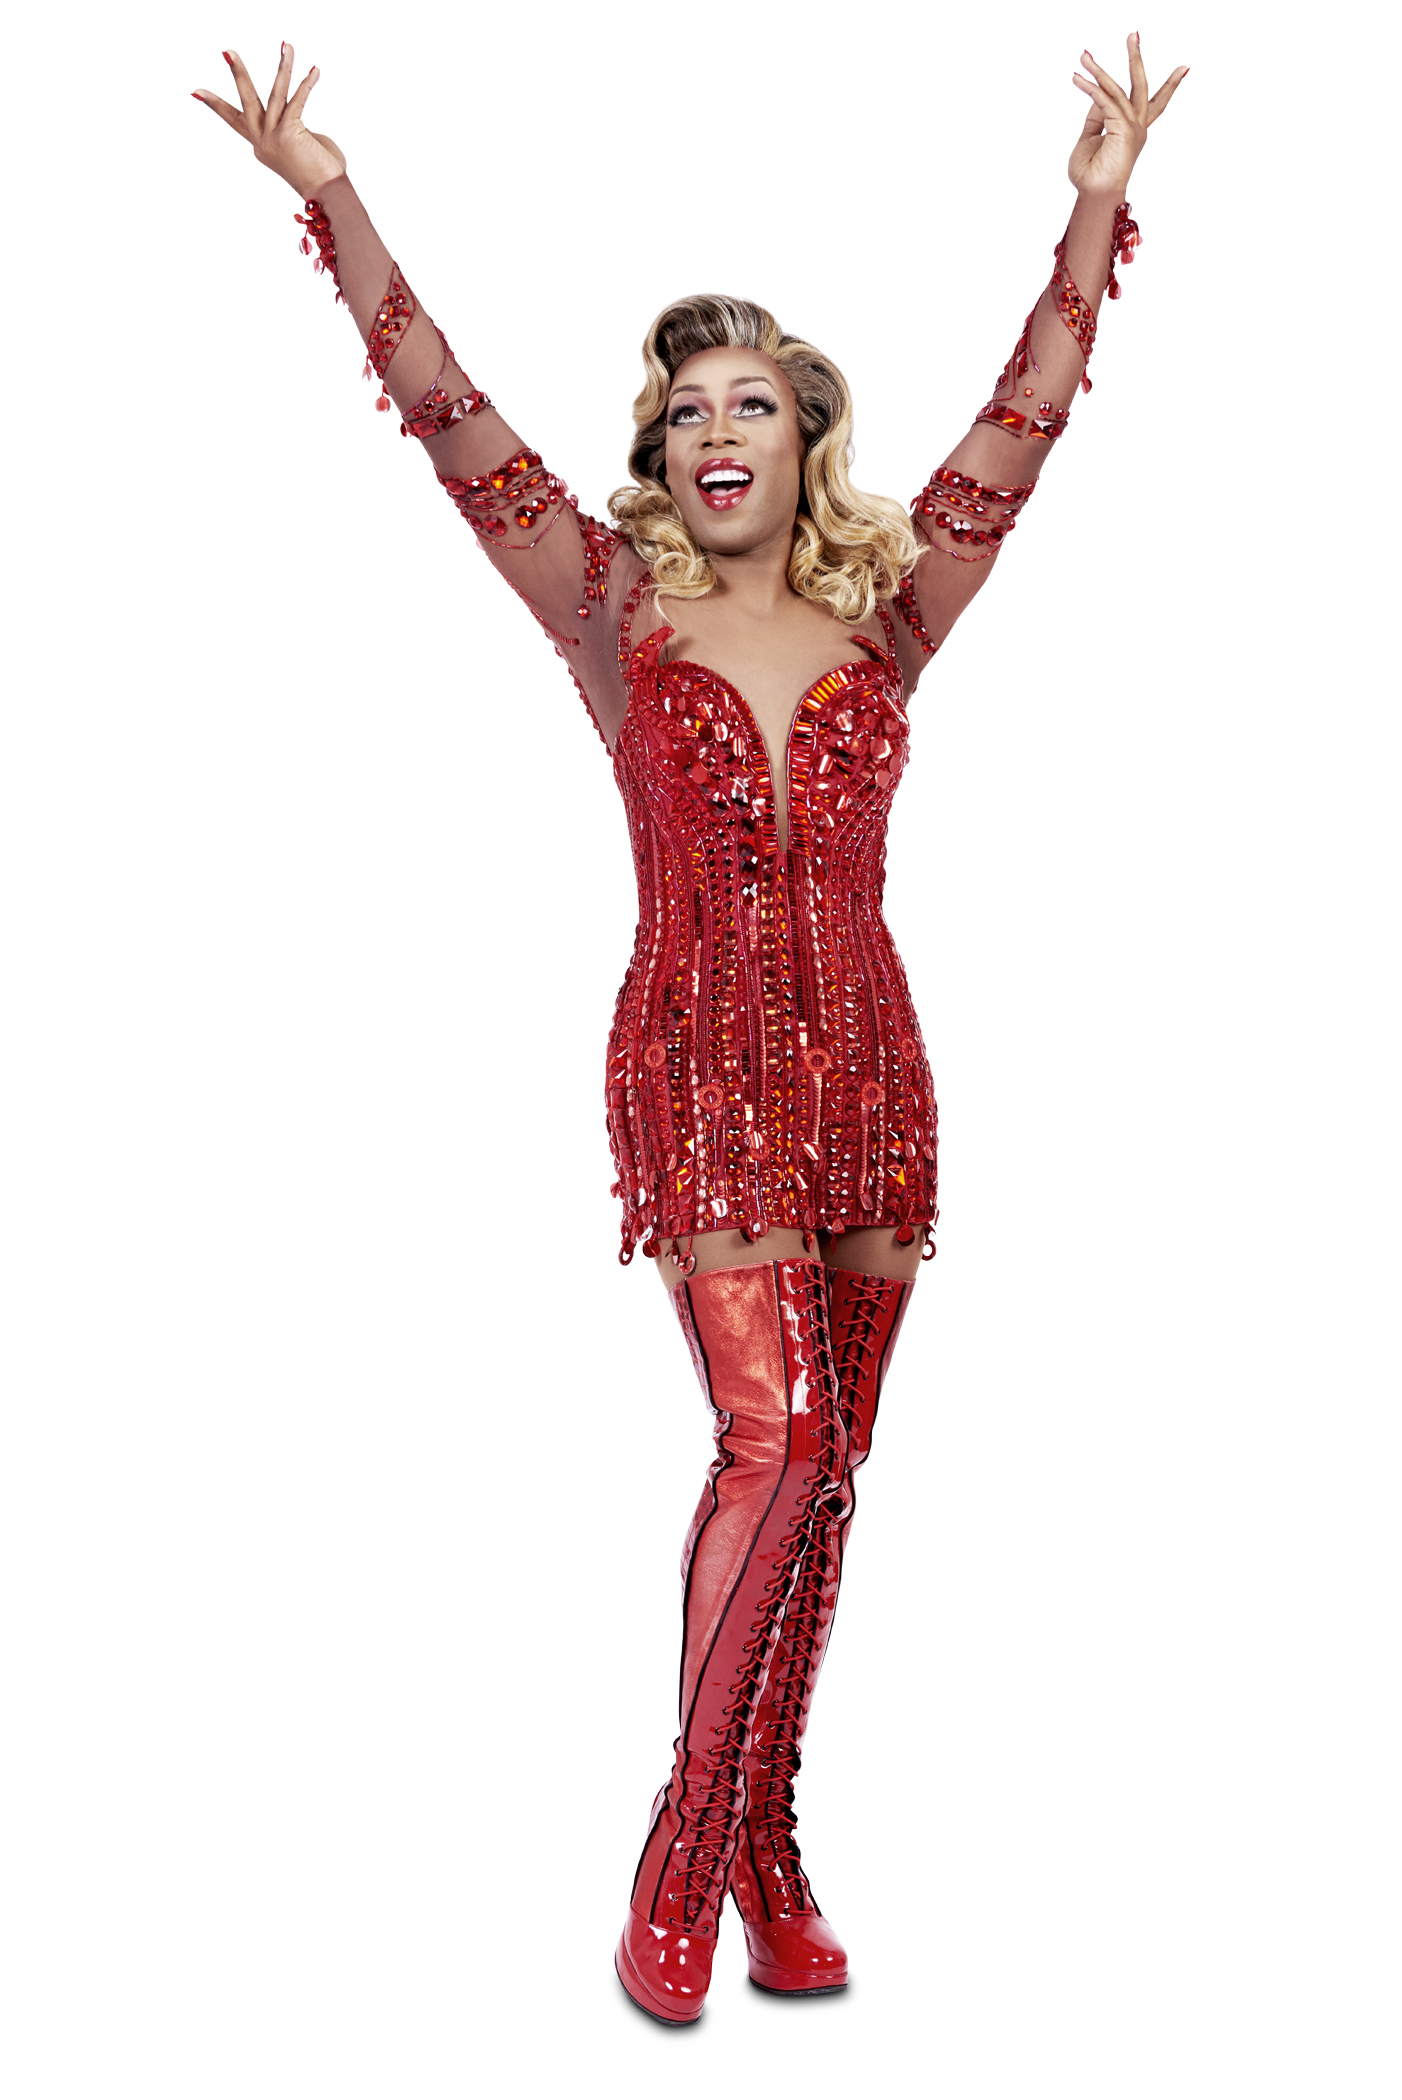 Todrick Hall as Lola in Broadway's Kinky Boots